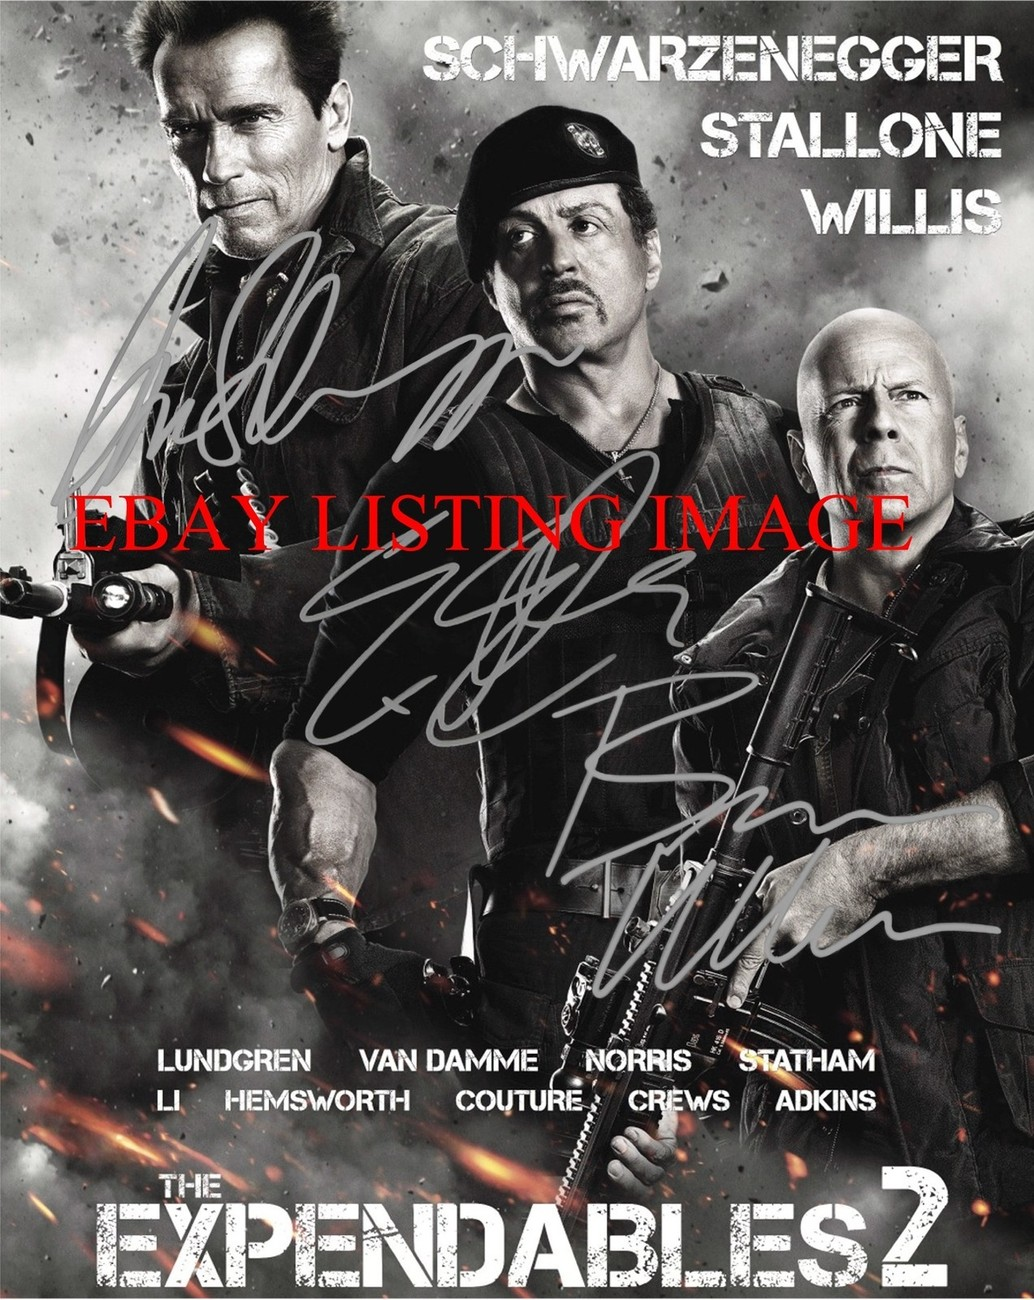 Primary image for THE EXPENDABLES 2 AUTOGRAPHED RP PHOTO SYLVESTER STALLONE SCHWARZENEGGER WILLIS